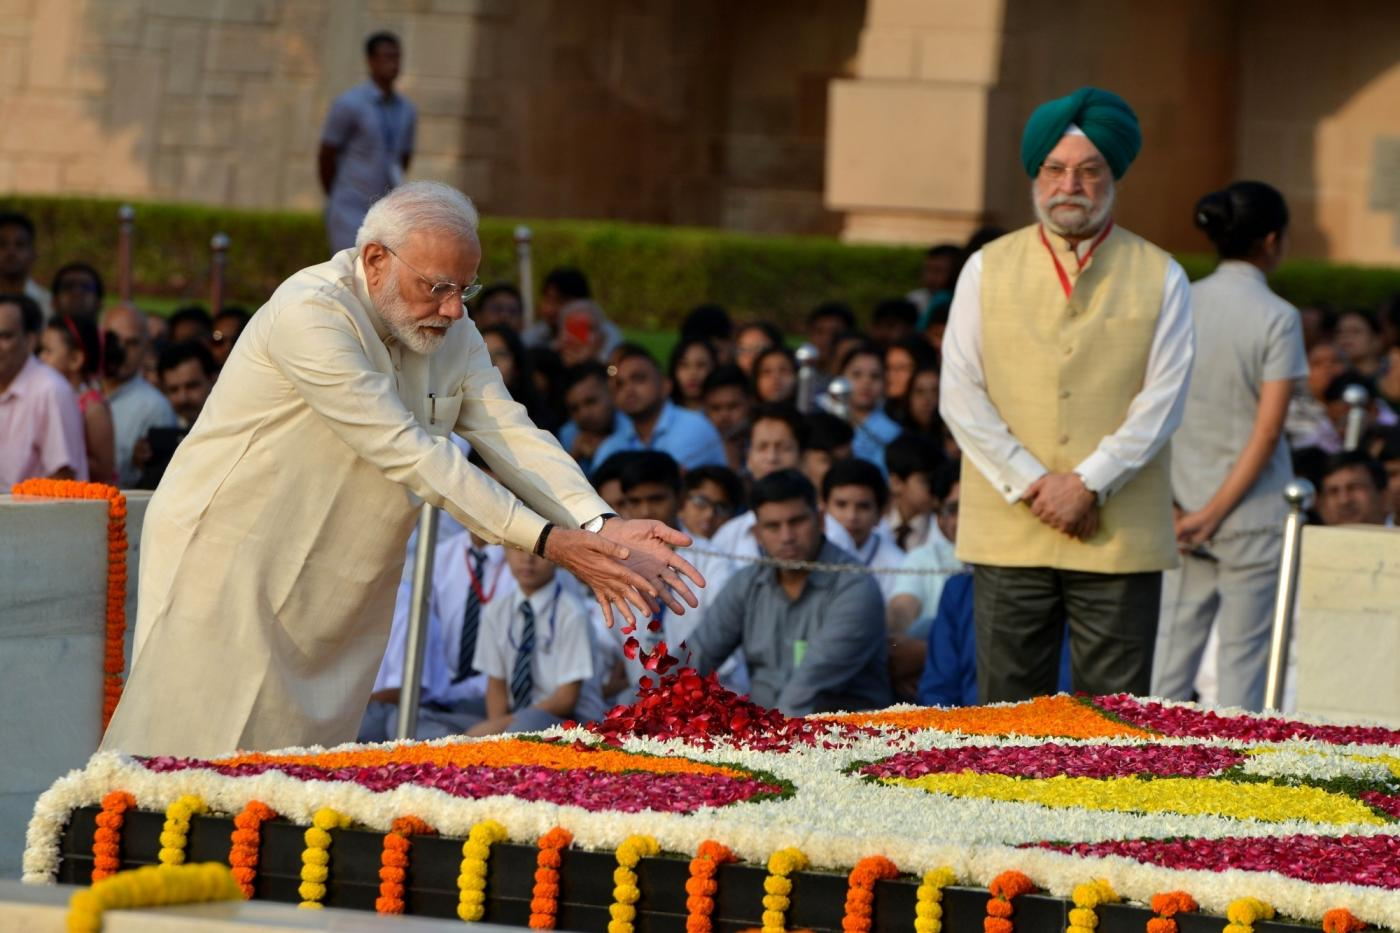 New Delhi: Prime minister Narendra Modi pays tribute to Mahatma Gandhi on his 150th birth Anniversary at Rajghat in New Delhi on Oct. 2, 2019. (Photo: IANS) by .